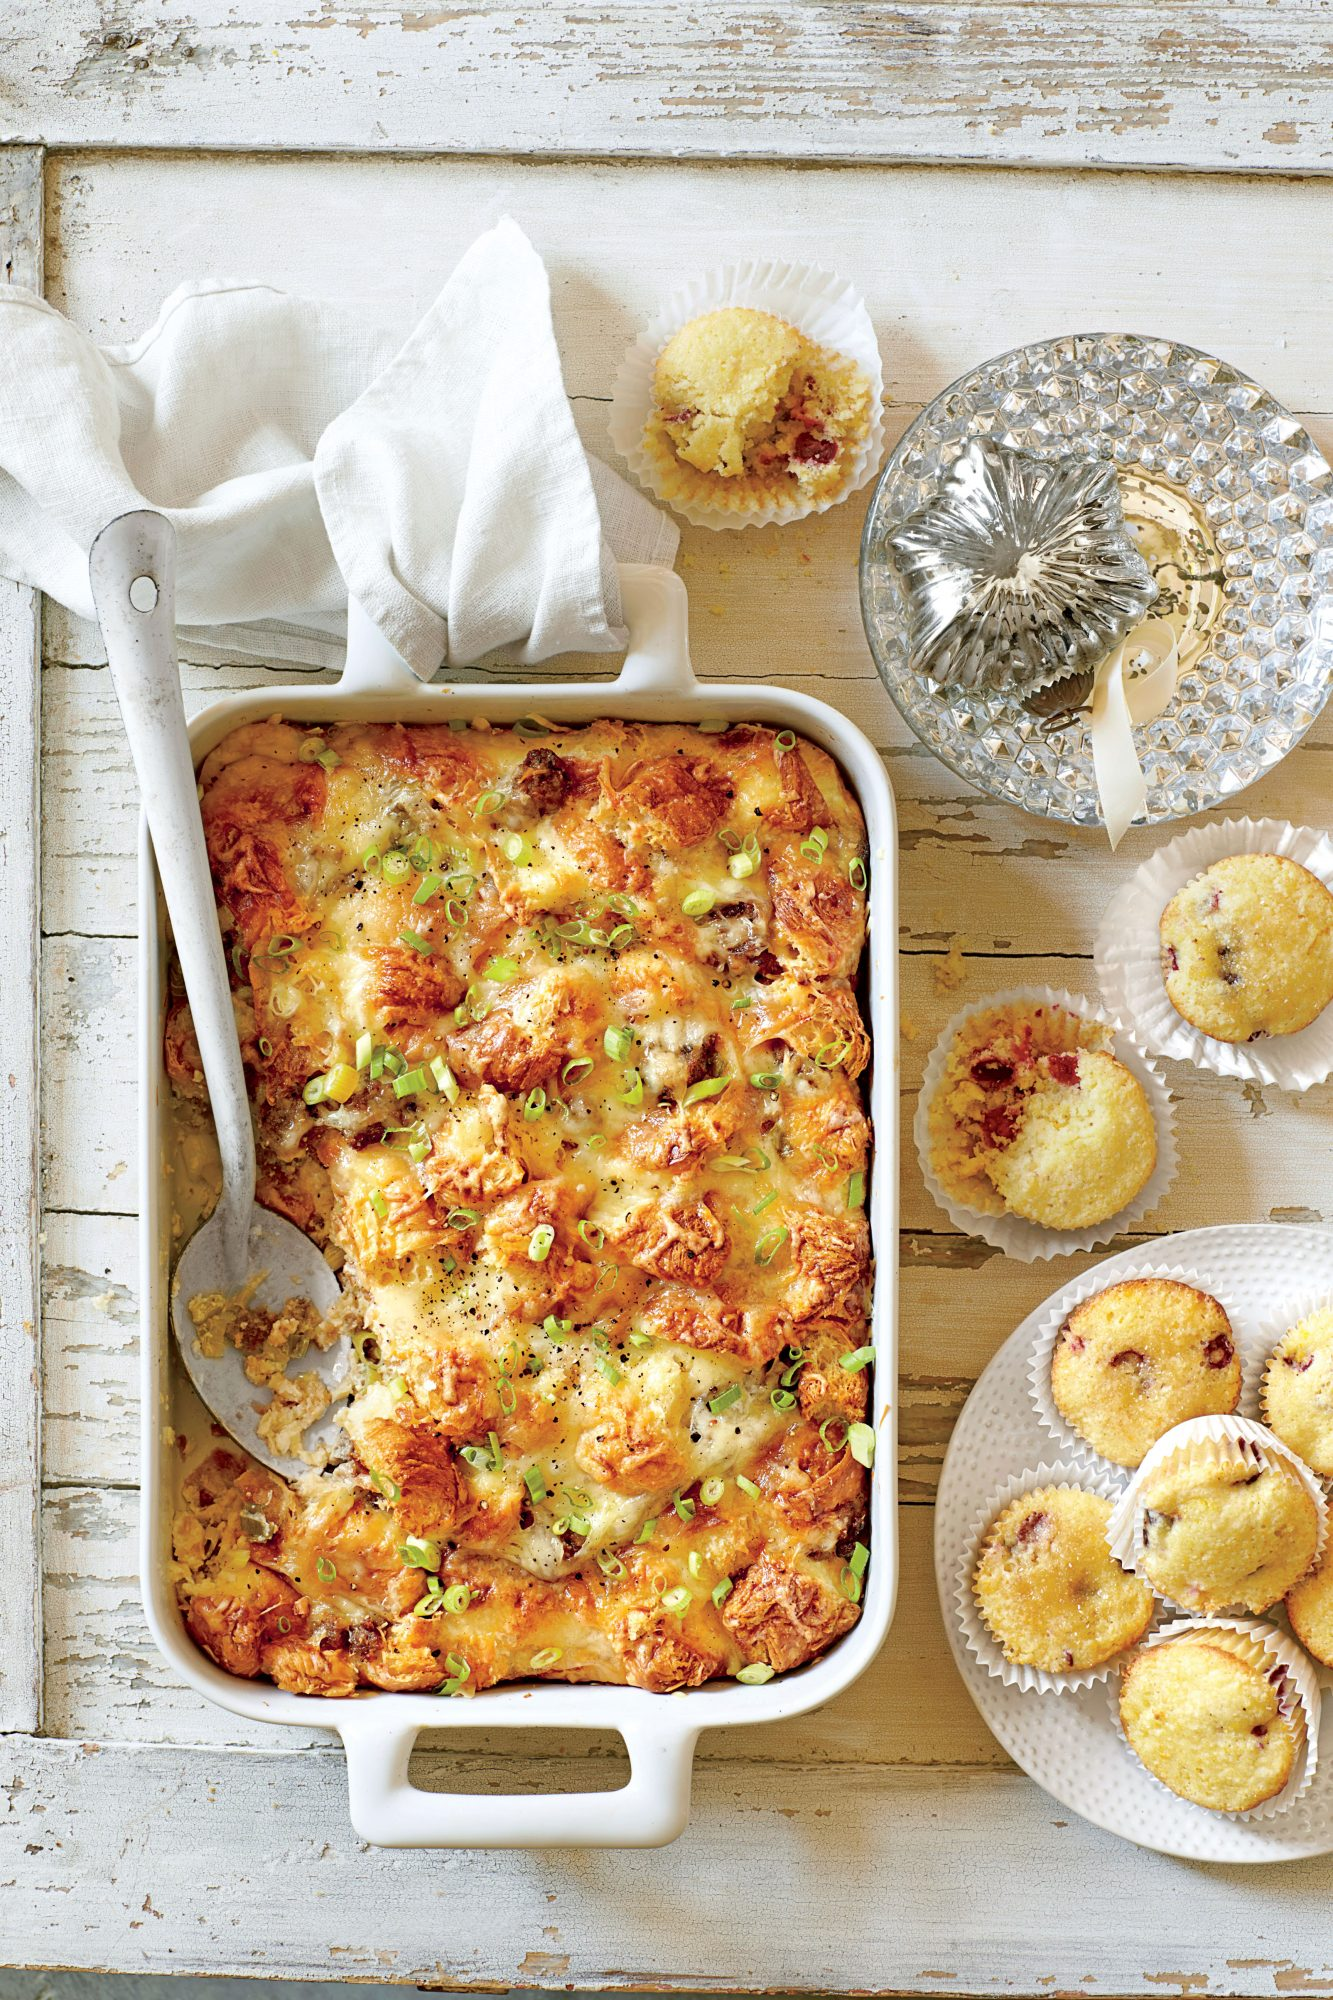 Cheesy Sausage-and-Croissant Casserole